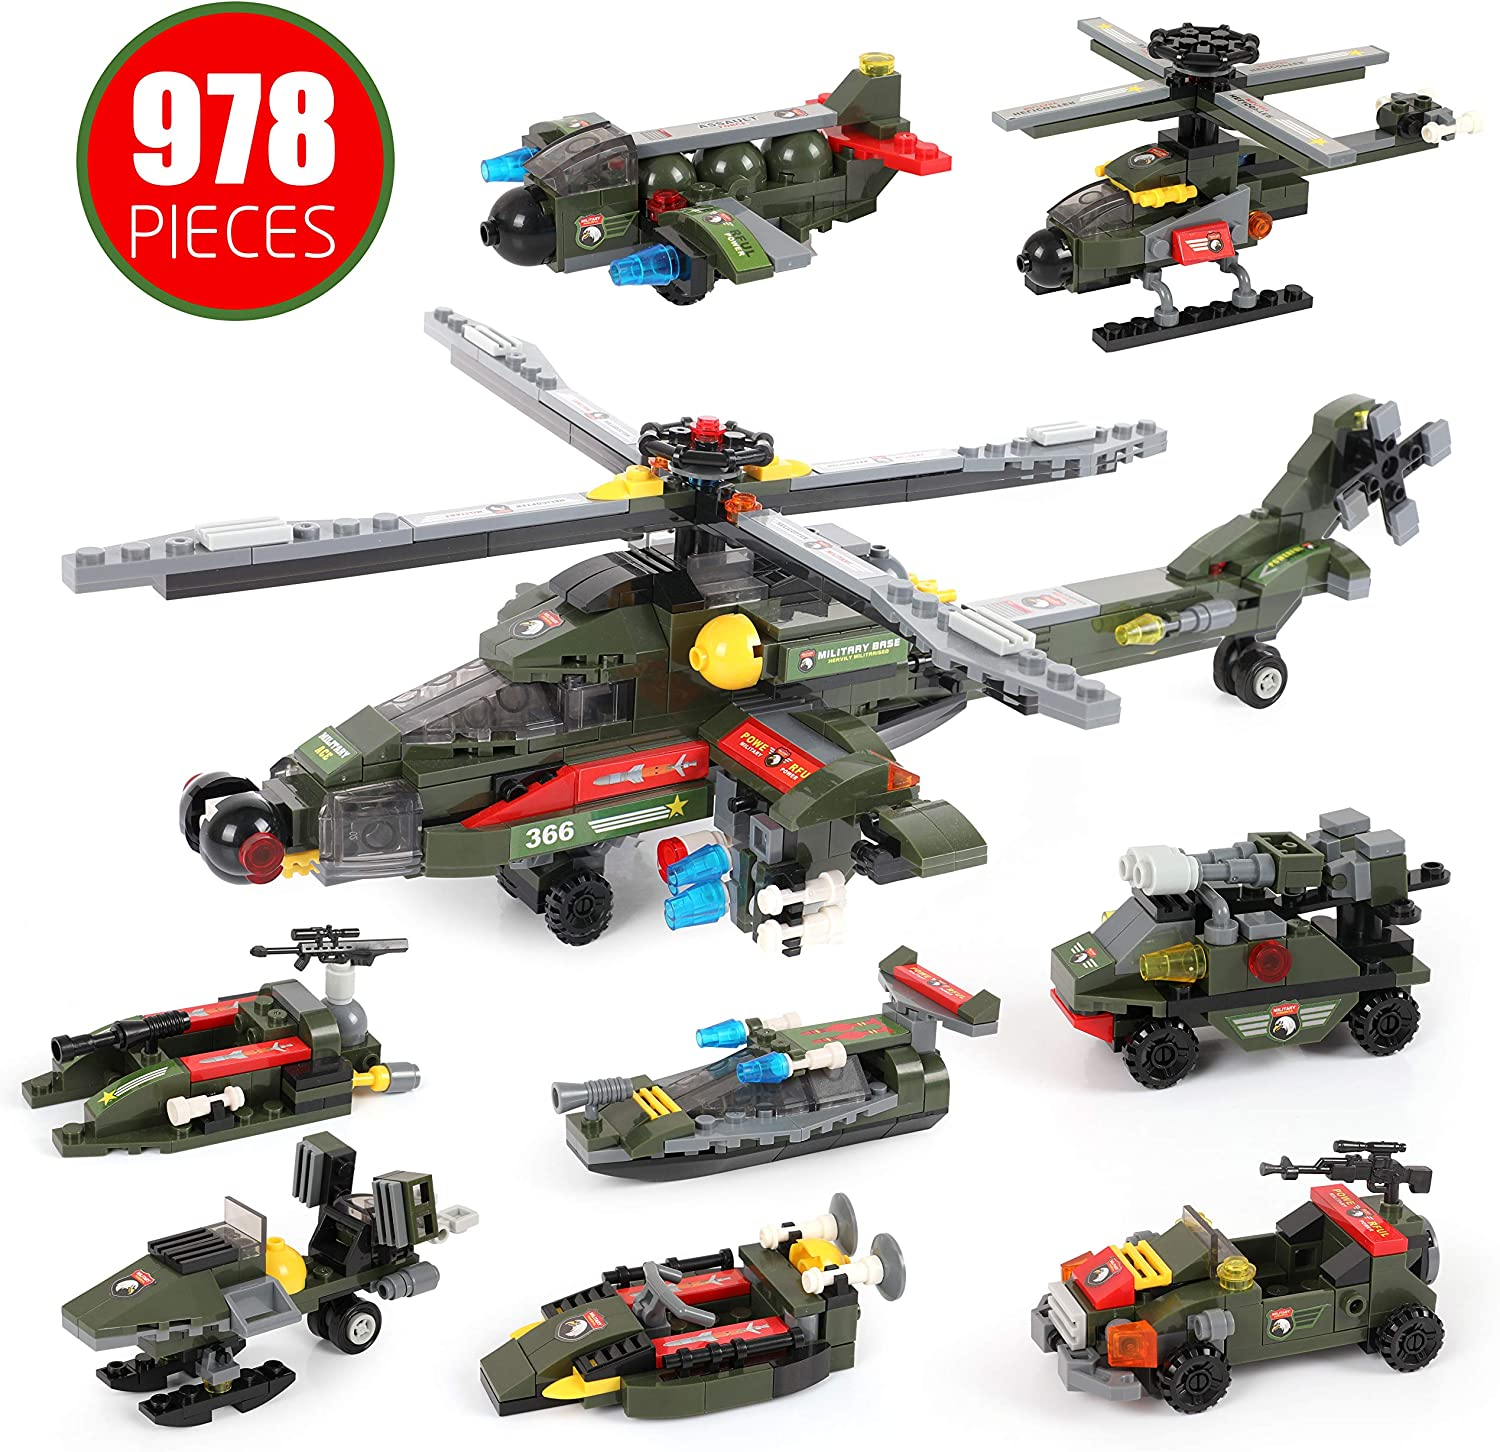 Exercise N Play Creative Buliding Bricks with Helicopter Car Truck Combat Models for Boys Girls 6-12 Years Building Blocks Gunship War Sets Toy